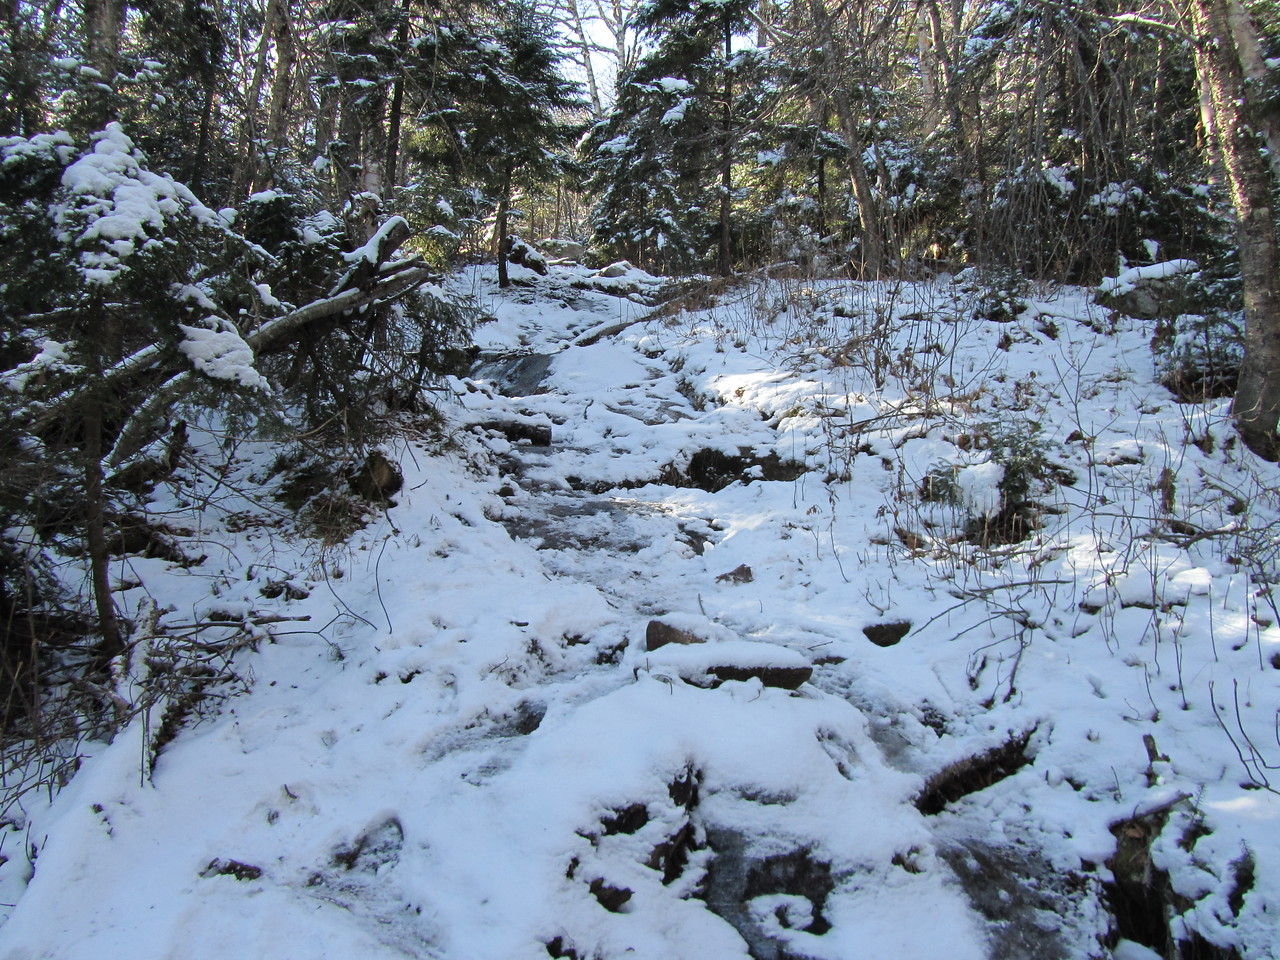 Per usual, the old trail is a new stream. Now icy and trecherous. Onward ho.